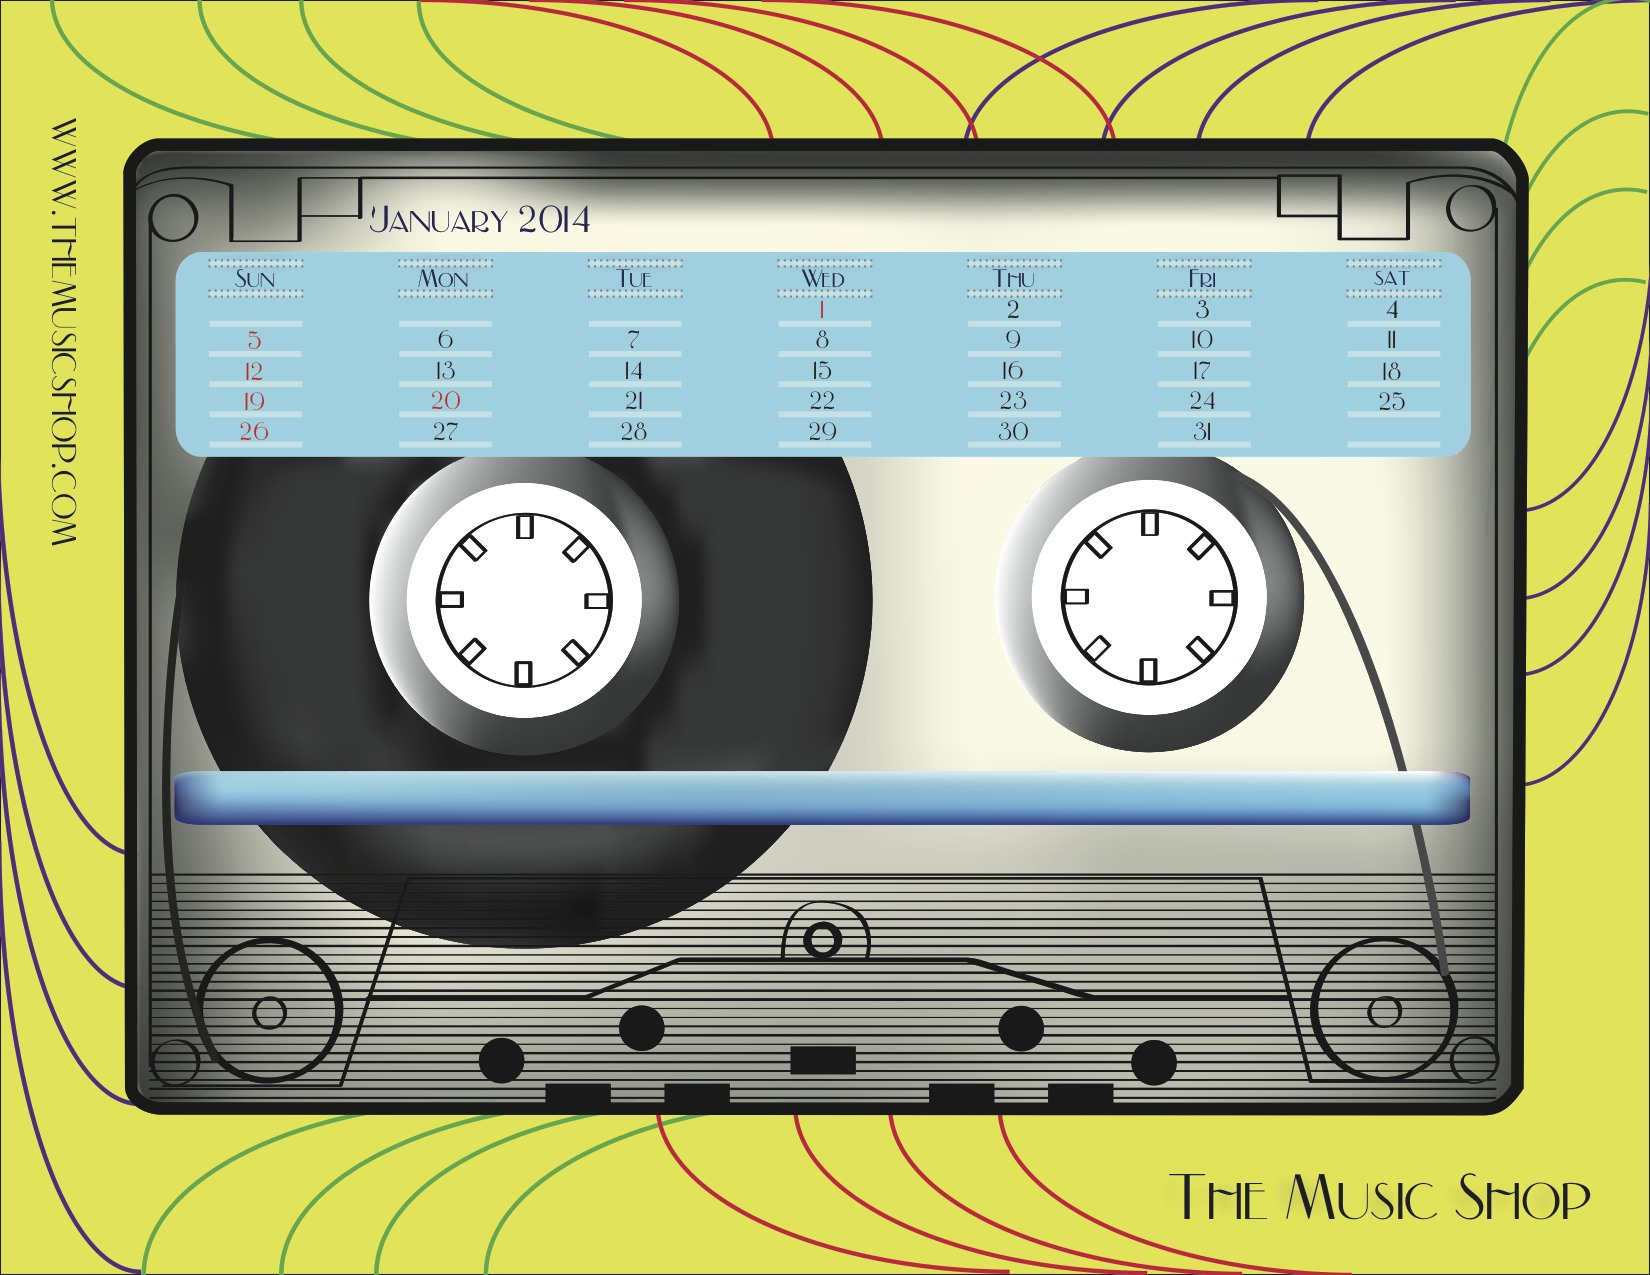 This calendar is designed for the Music Shop. All the pages have the same cassette on them with different backgrounds. The Cassette plays from left to right until the last month of the year.